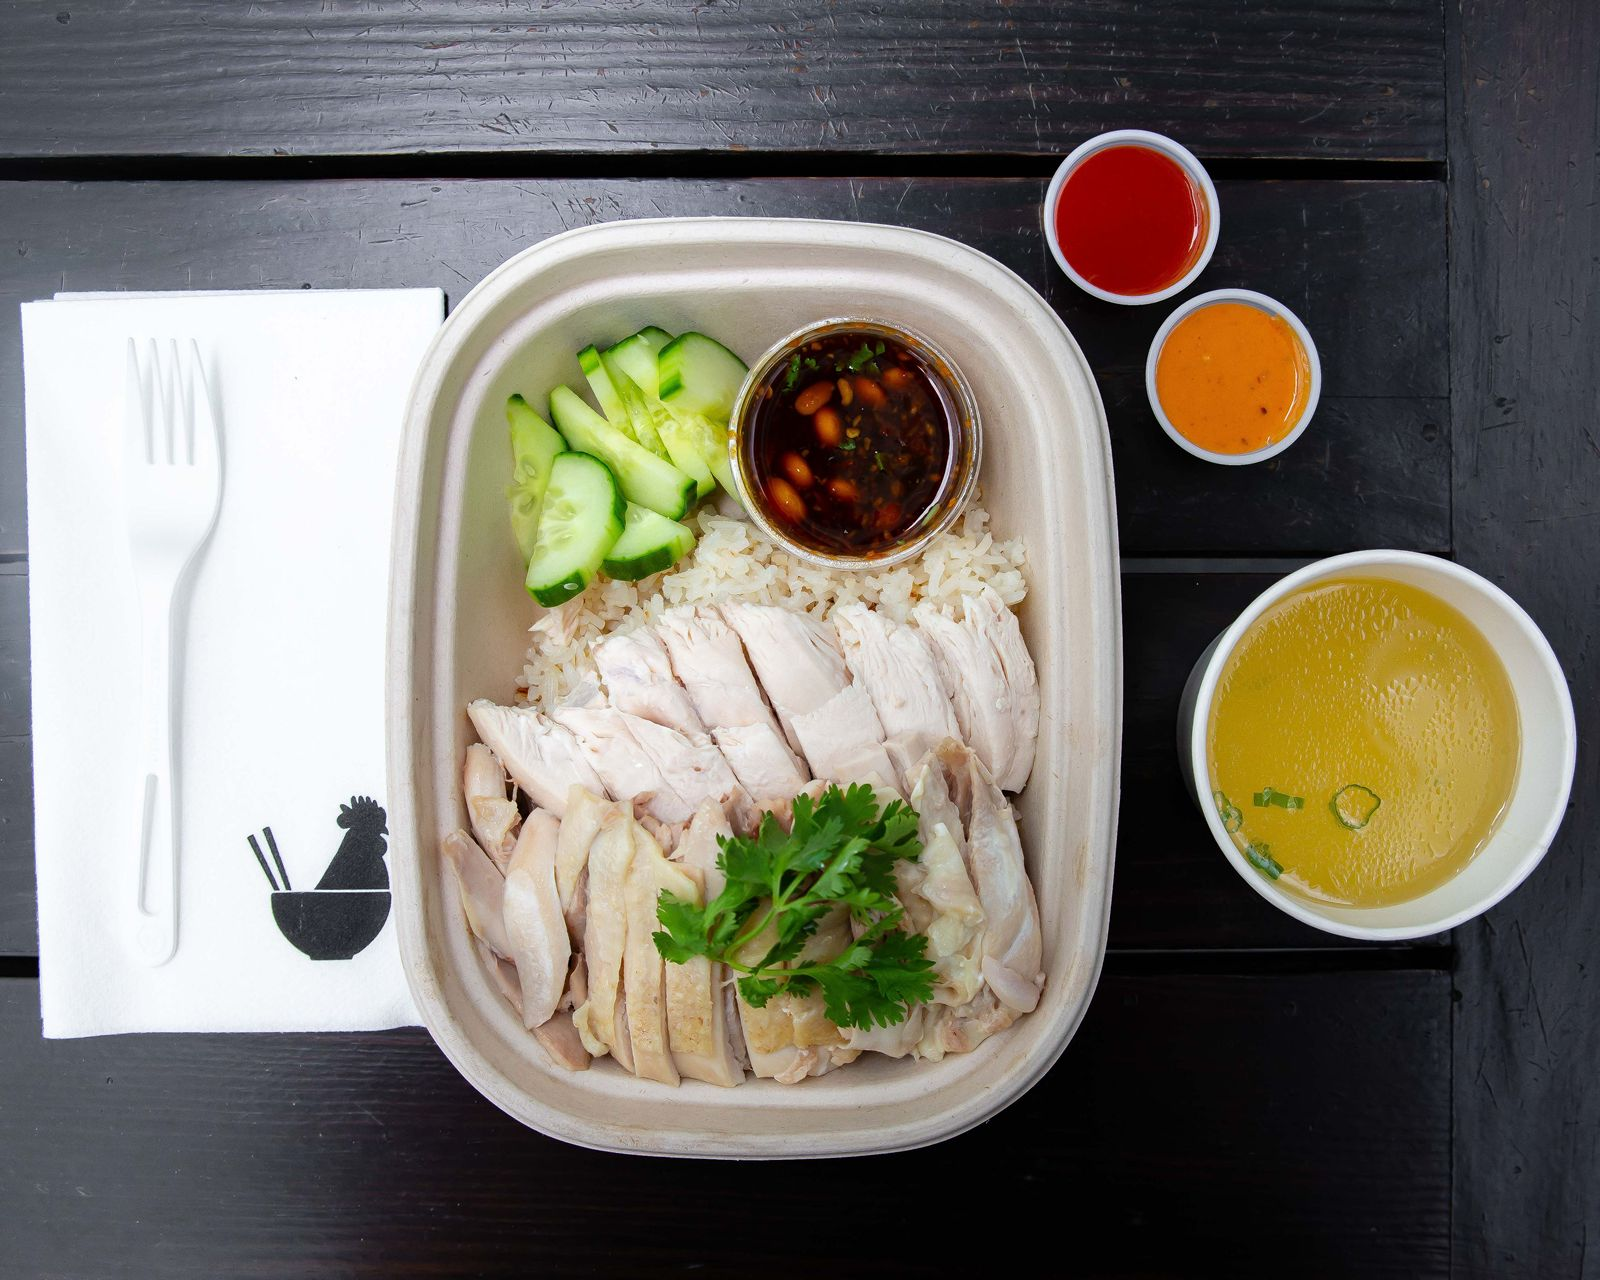 Rooster & Rice Prepares to Expand With COVID-Tested Restaurant Model